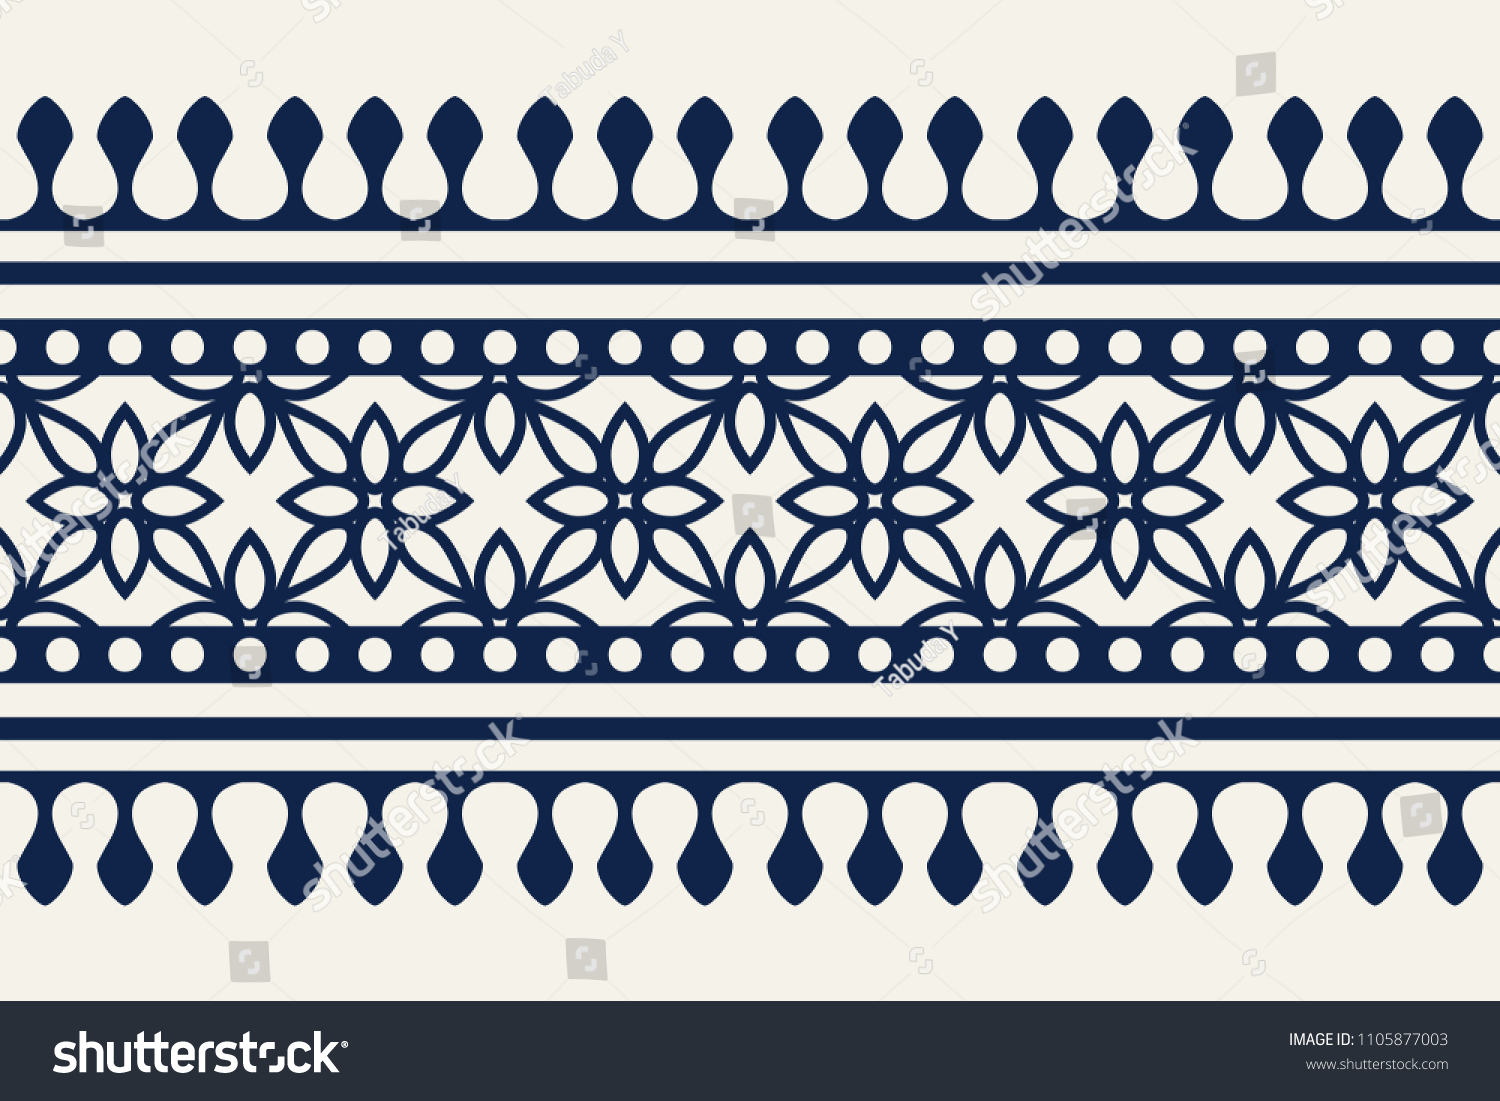 Woodblock printed indigo dye seamless ethnic floral border. Traditional oriental ornament of India Kashmir, geometric flowers motif, navy blue on ecru background. Textile design. #1105877003